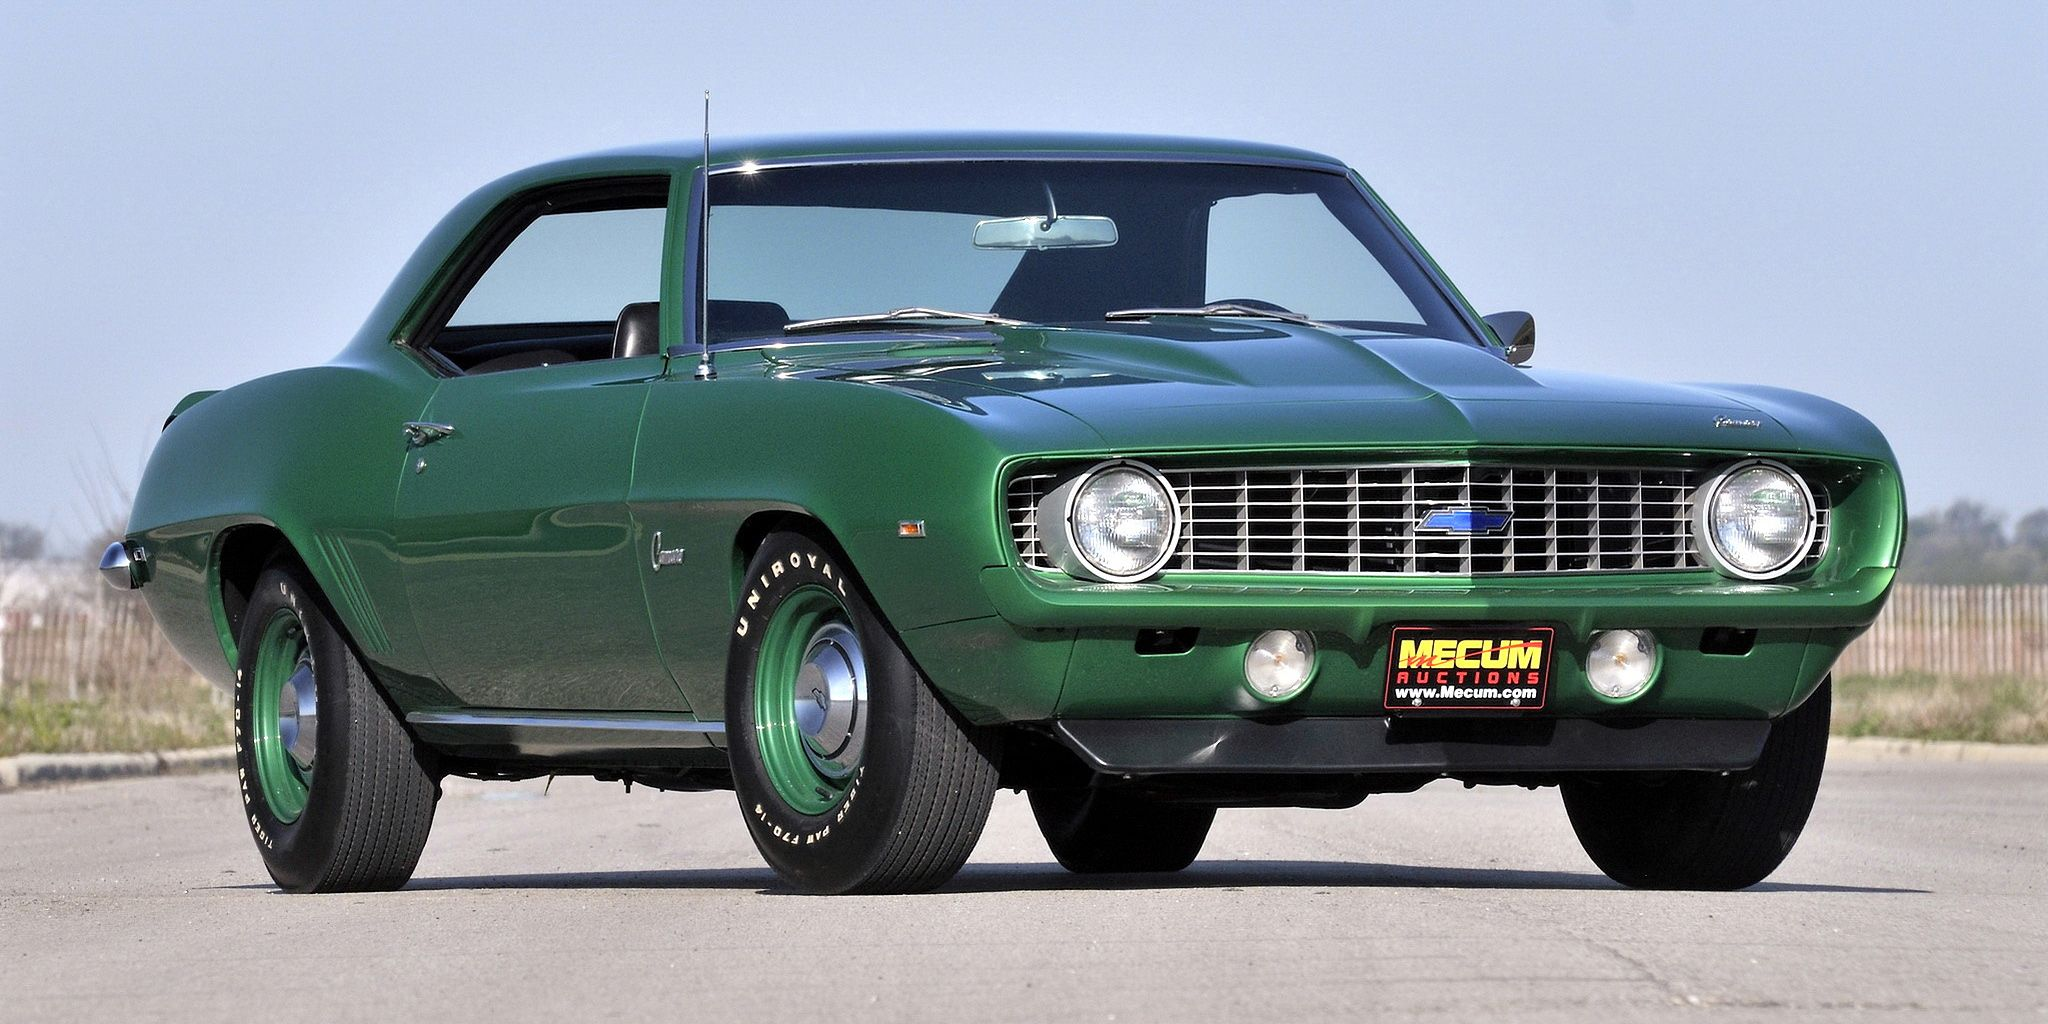 12 Best American Muscle Cars - Rare and Fast American Muscle Cars